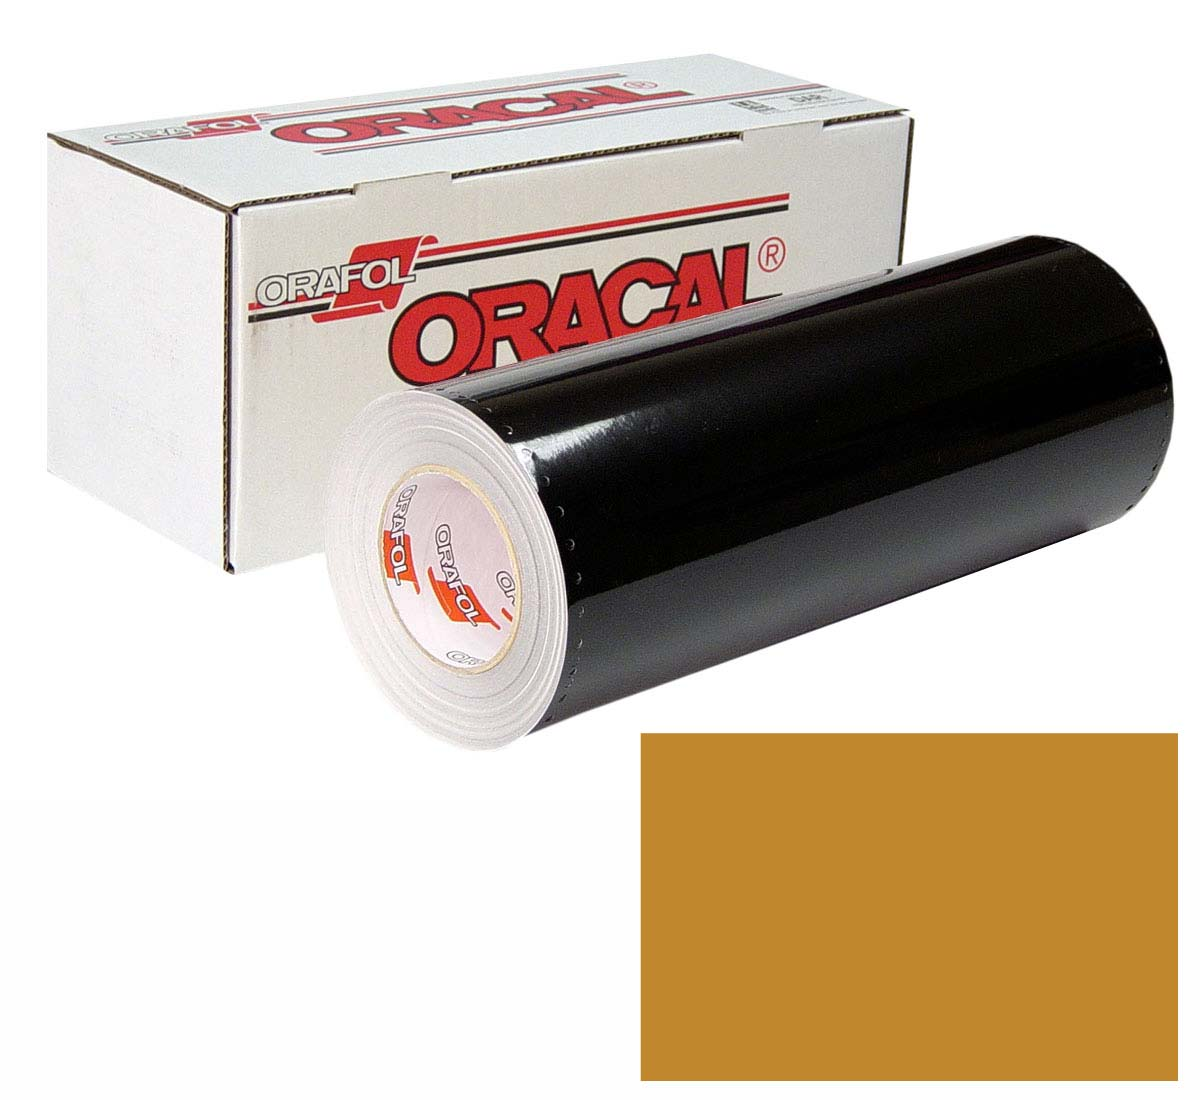 ORACAL 631 Unp 24In X 10Yd 092 Copper Met